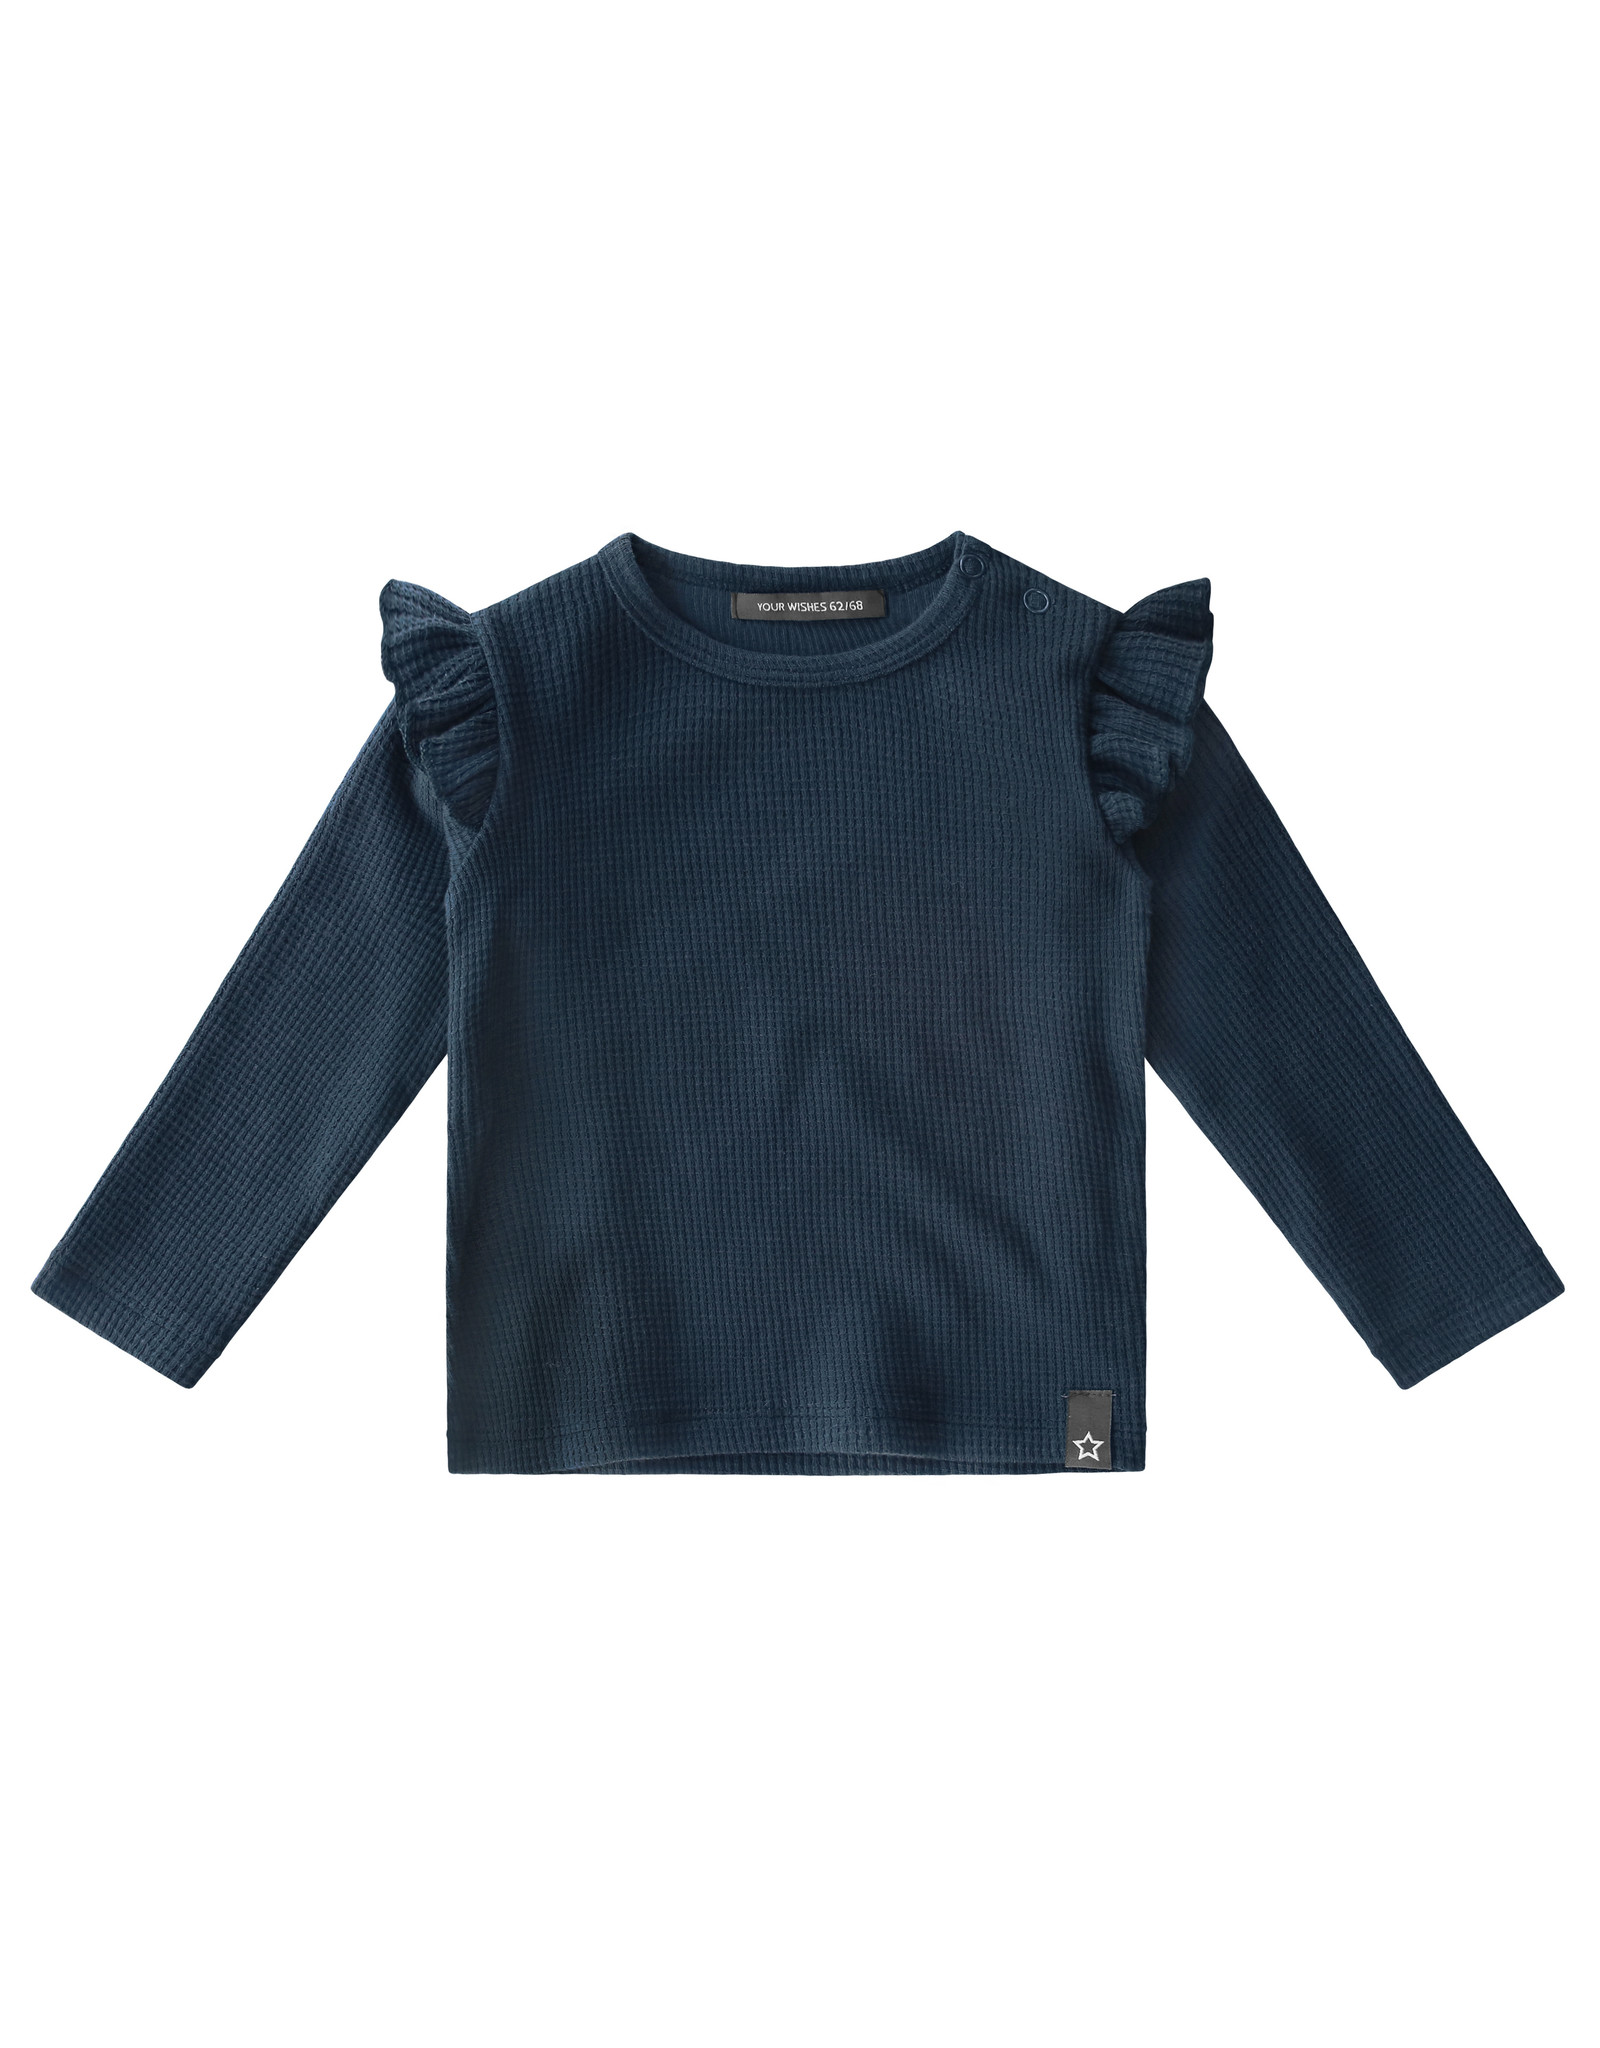 Your Wishes YW | Navy - Waffle | Ruffle Shoulder Top